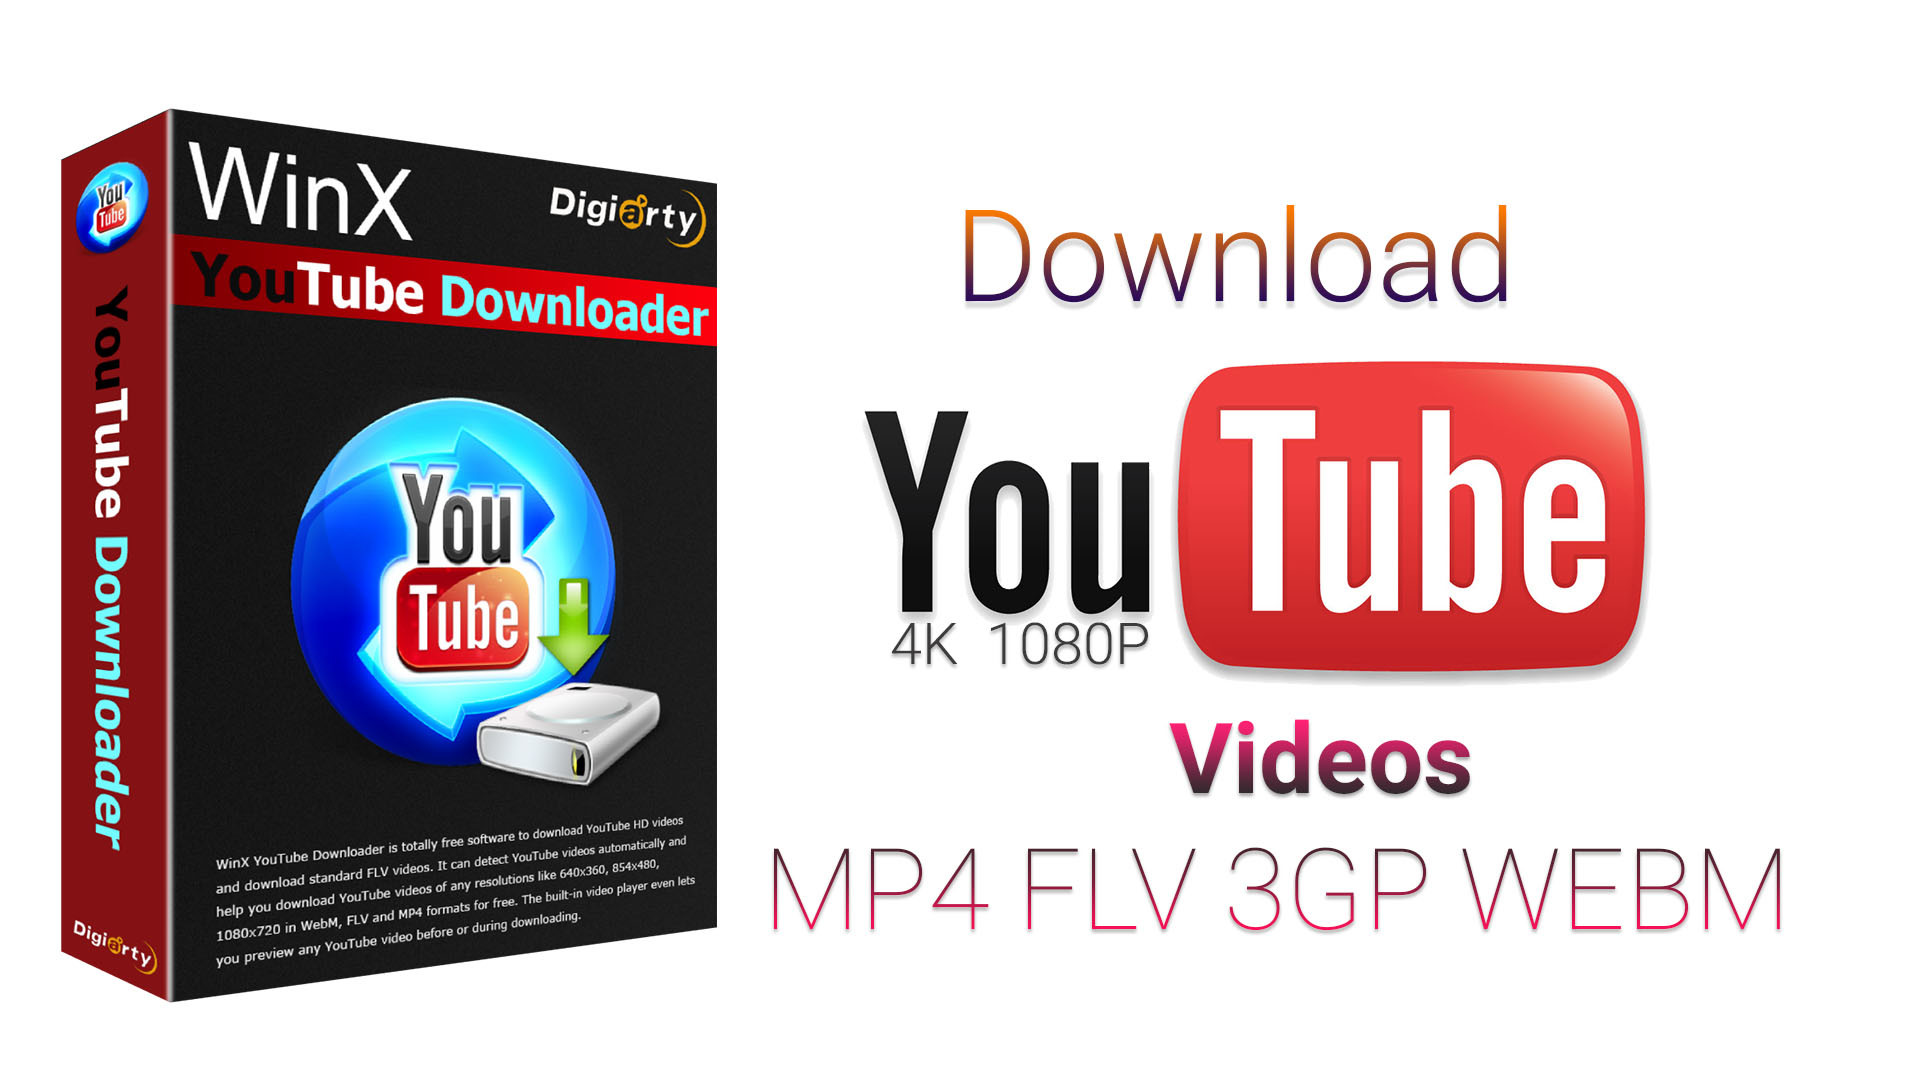 youtube download online video hd